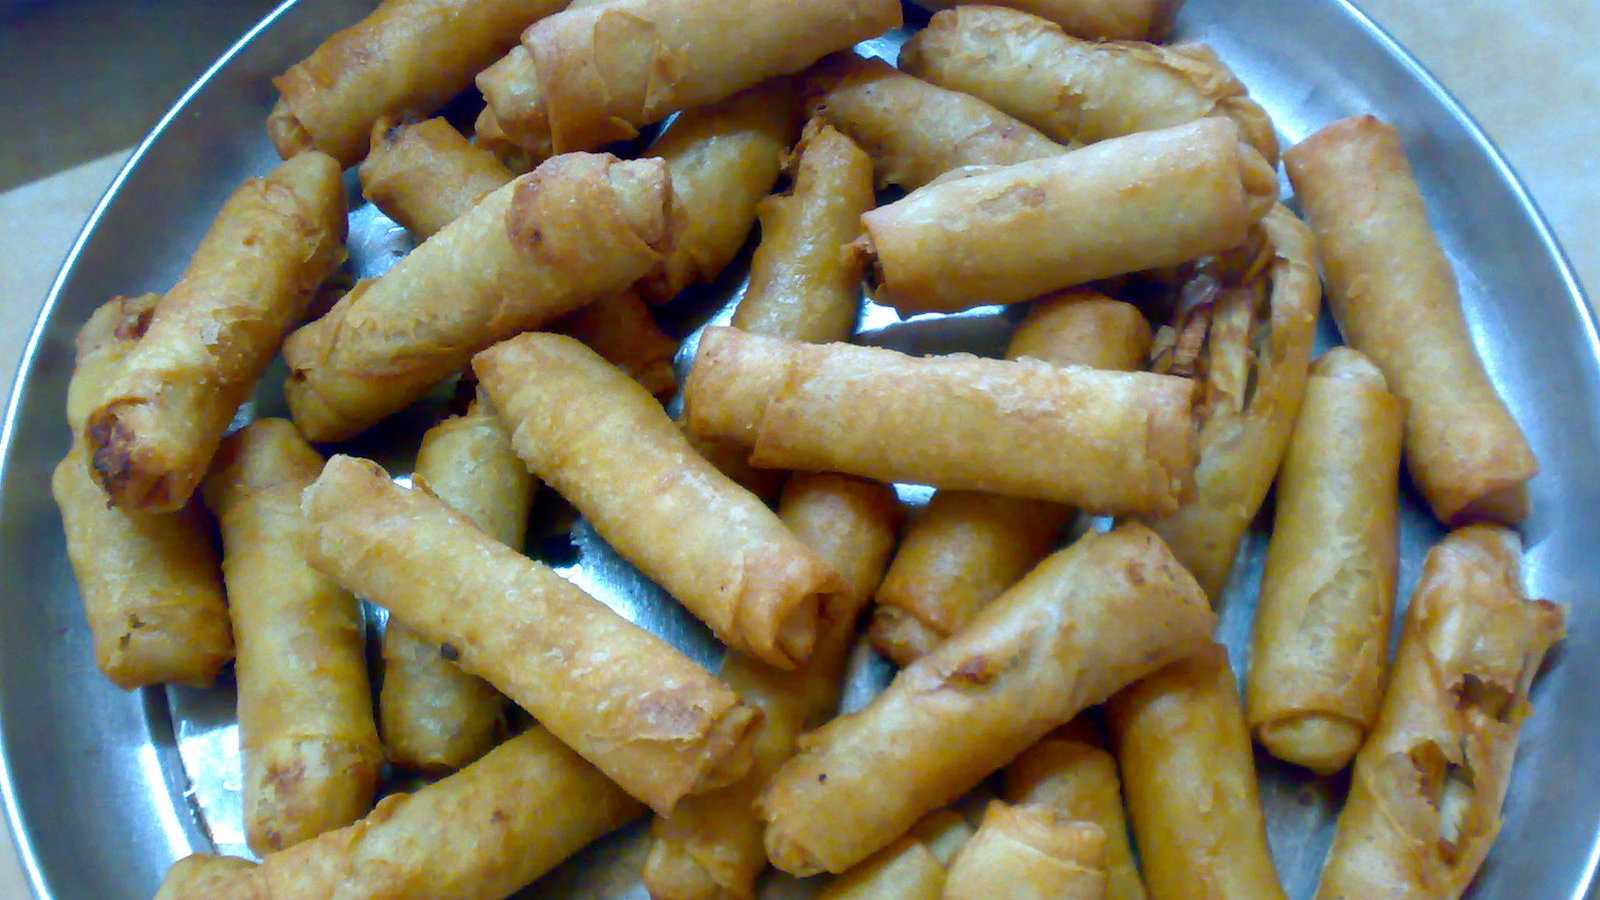 The Filipino version of spring rolls are called lumpia and while small they are packed with yumminess